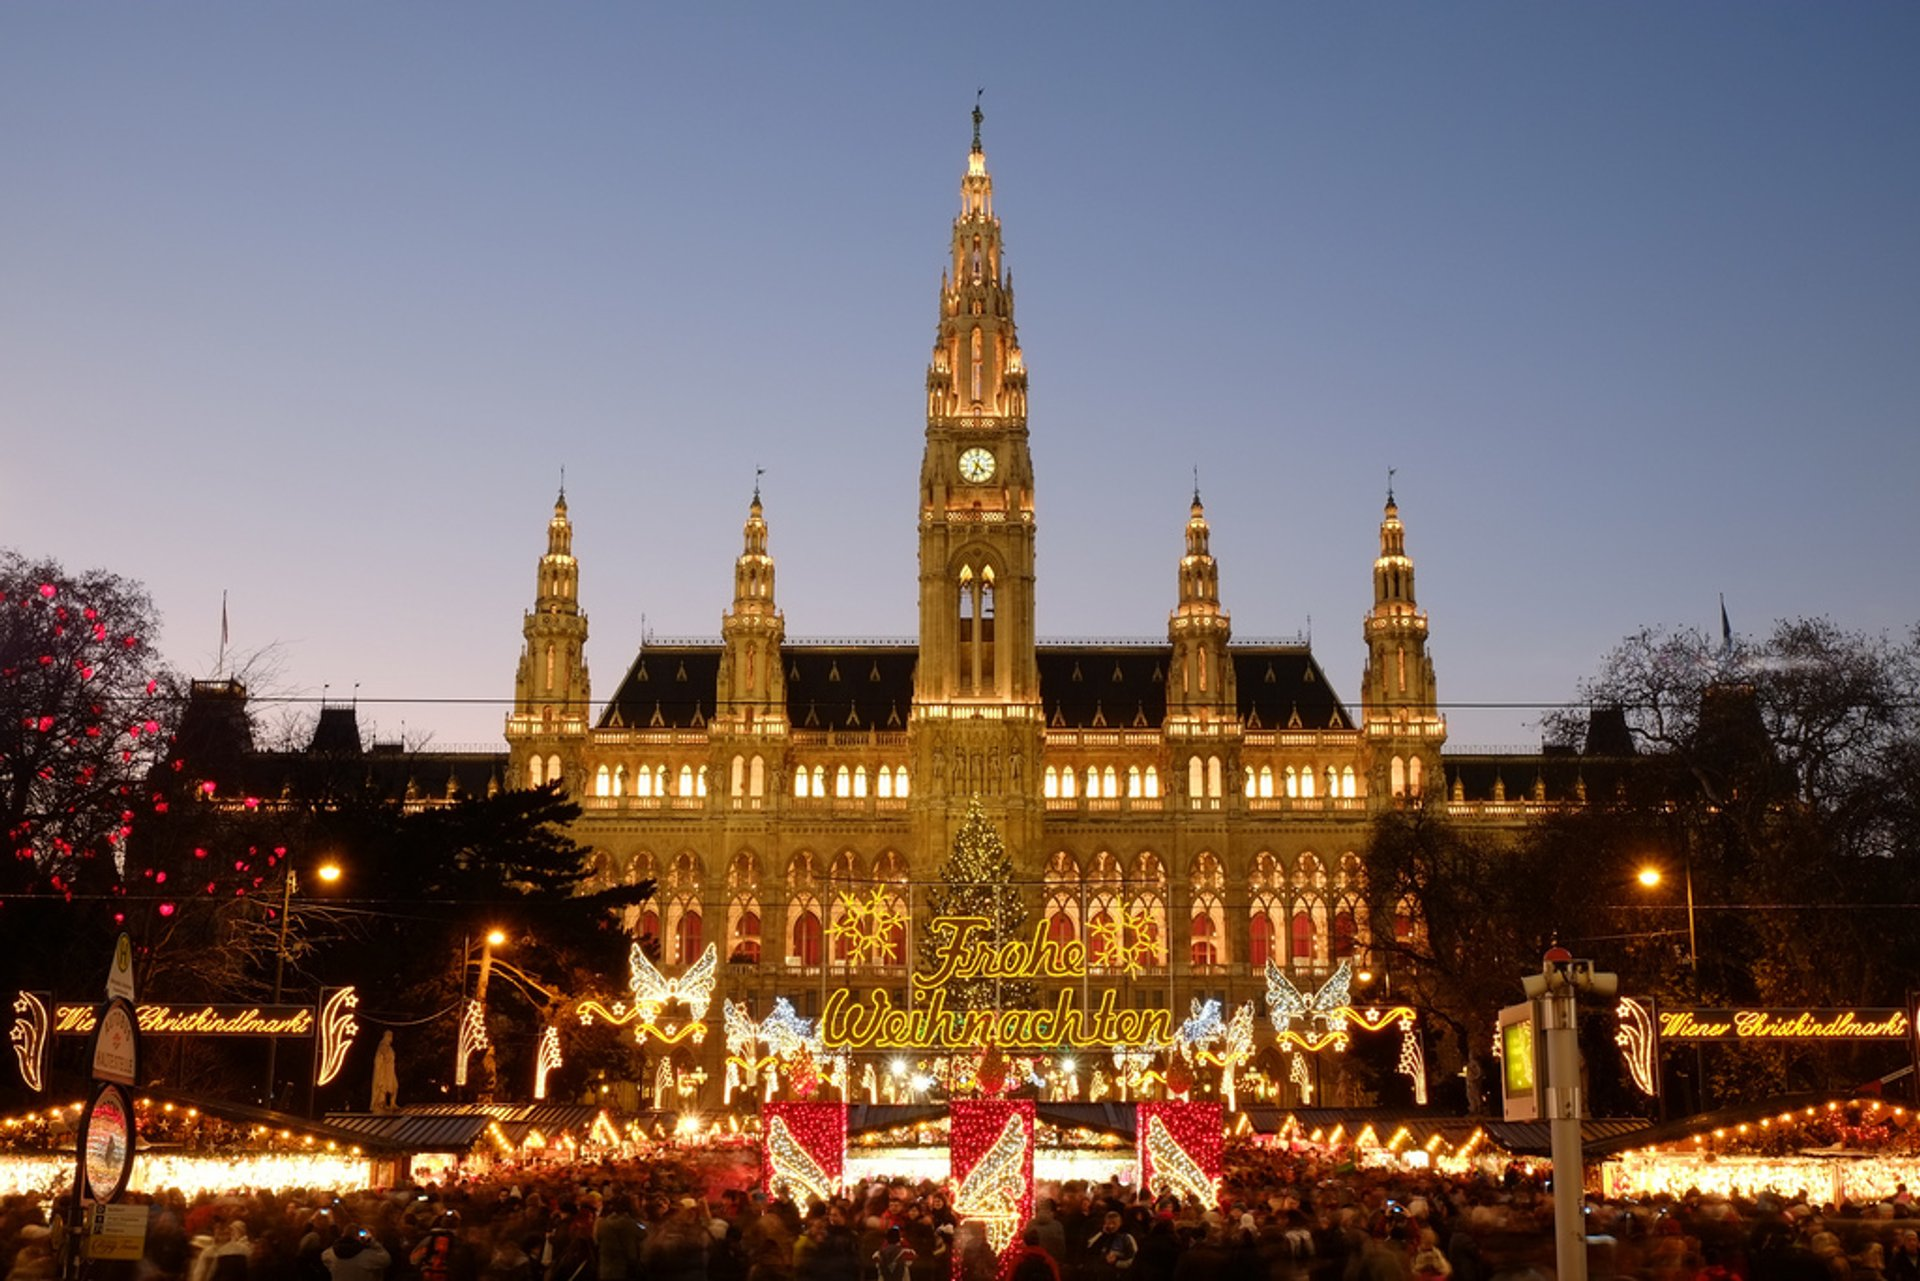 Ausria Christmas Markets 2020 Christmas Markets 2020 2021 in Austria   Dates